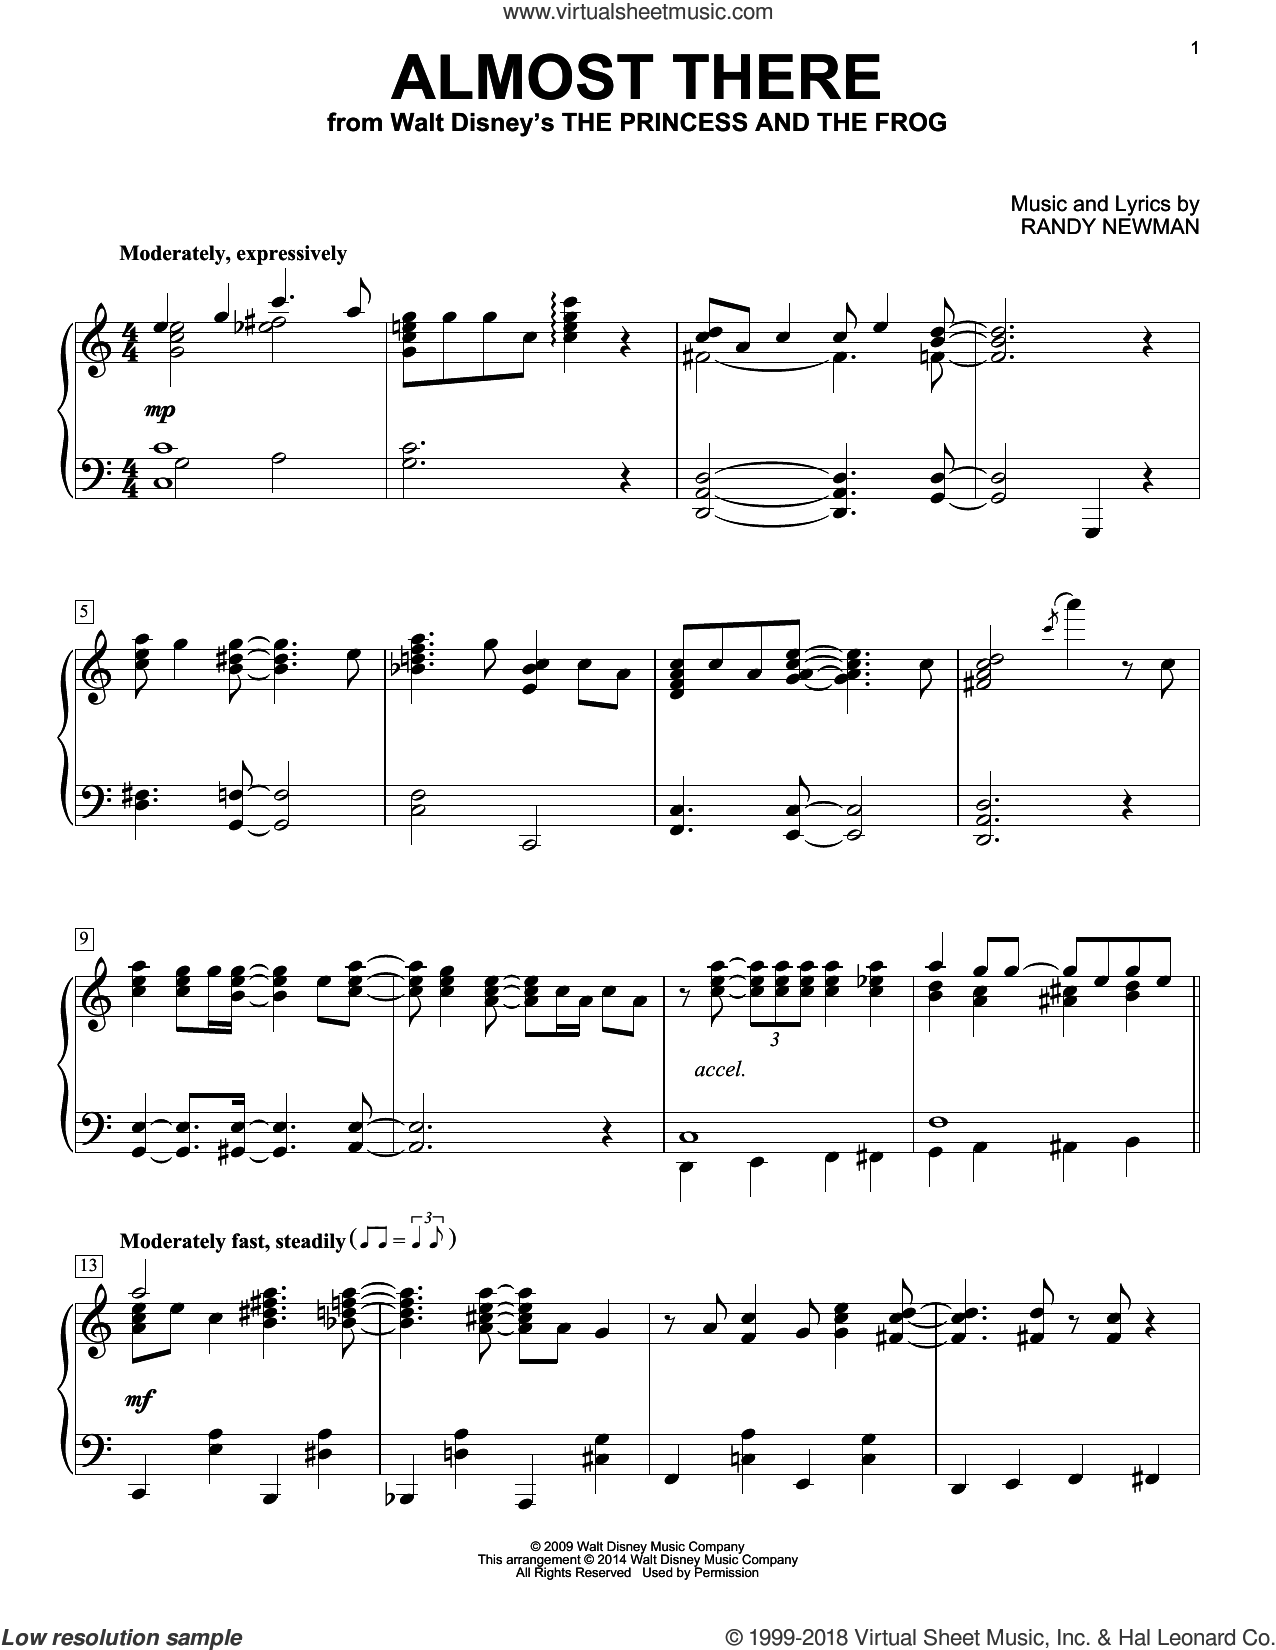 Almost There sheet music for piano solo by Randy Newman. Score Image Preview.